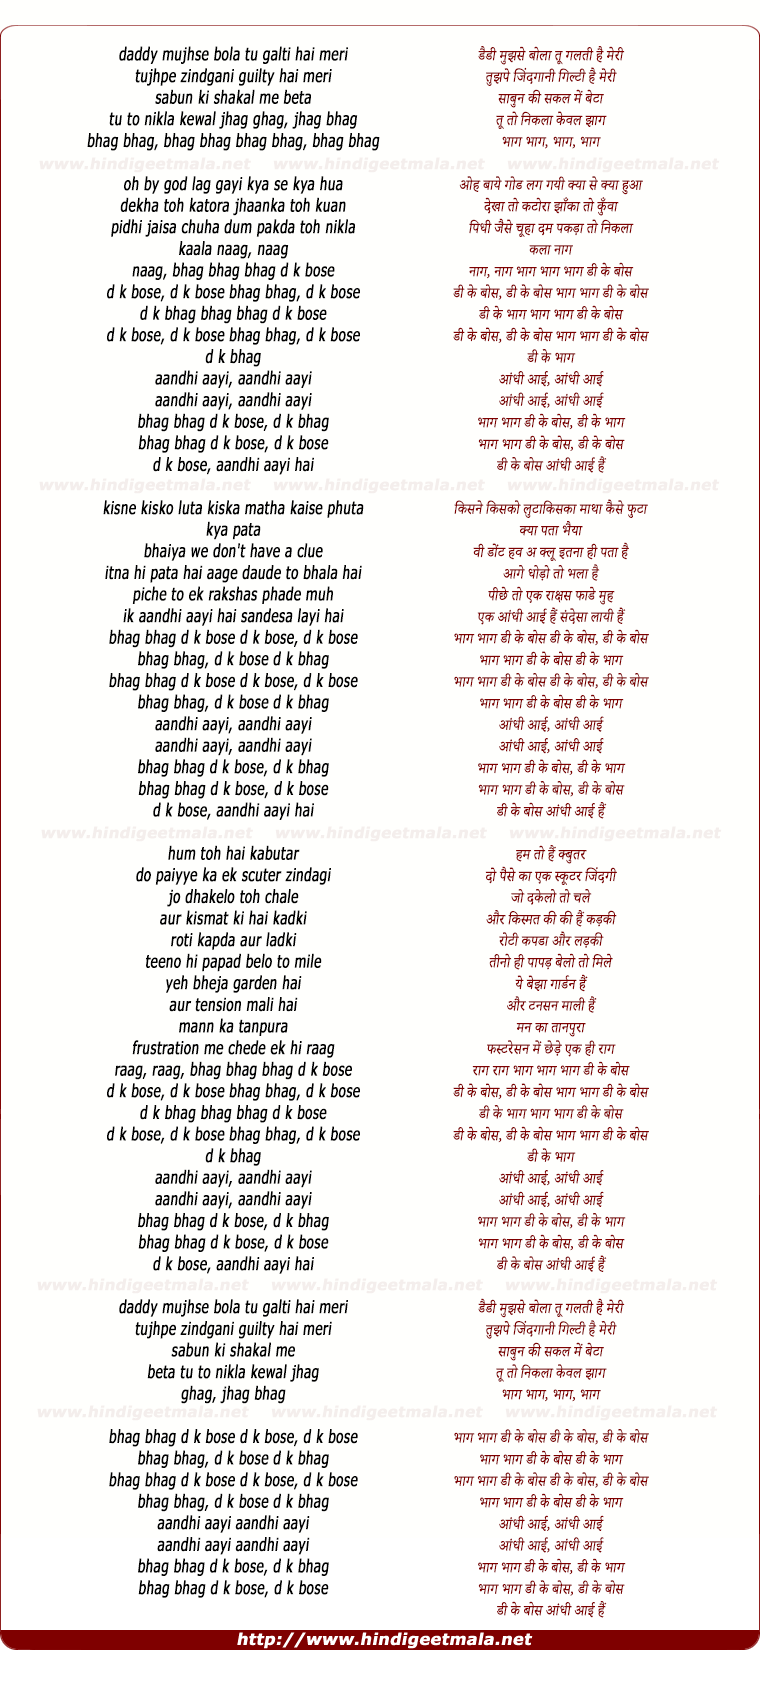 lyrics of song Bhaag bhaag D K Bose, Aandhi Aayi